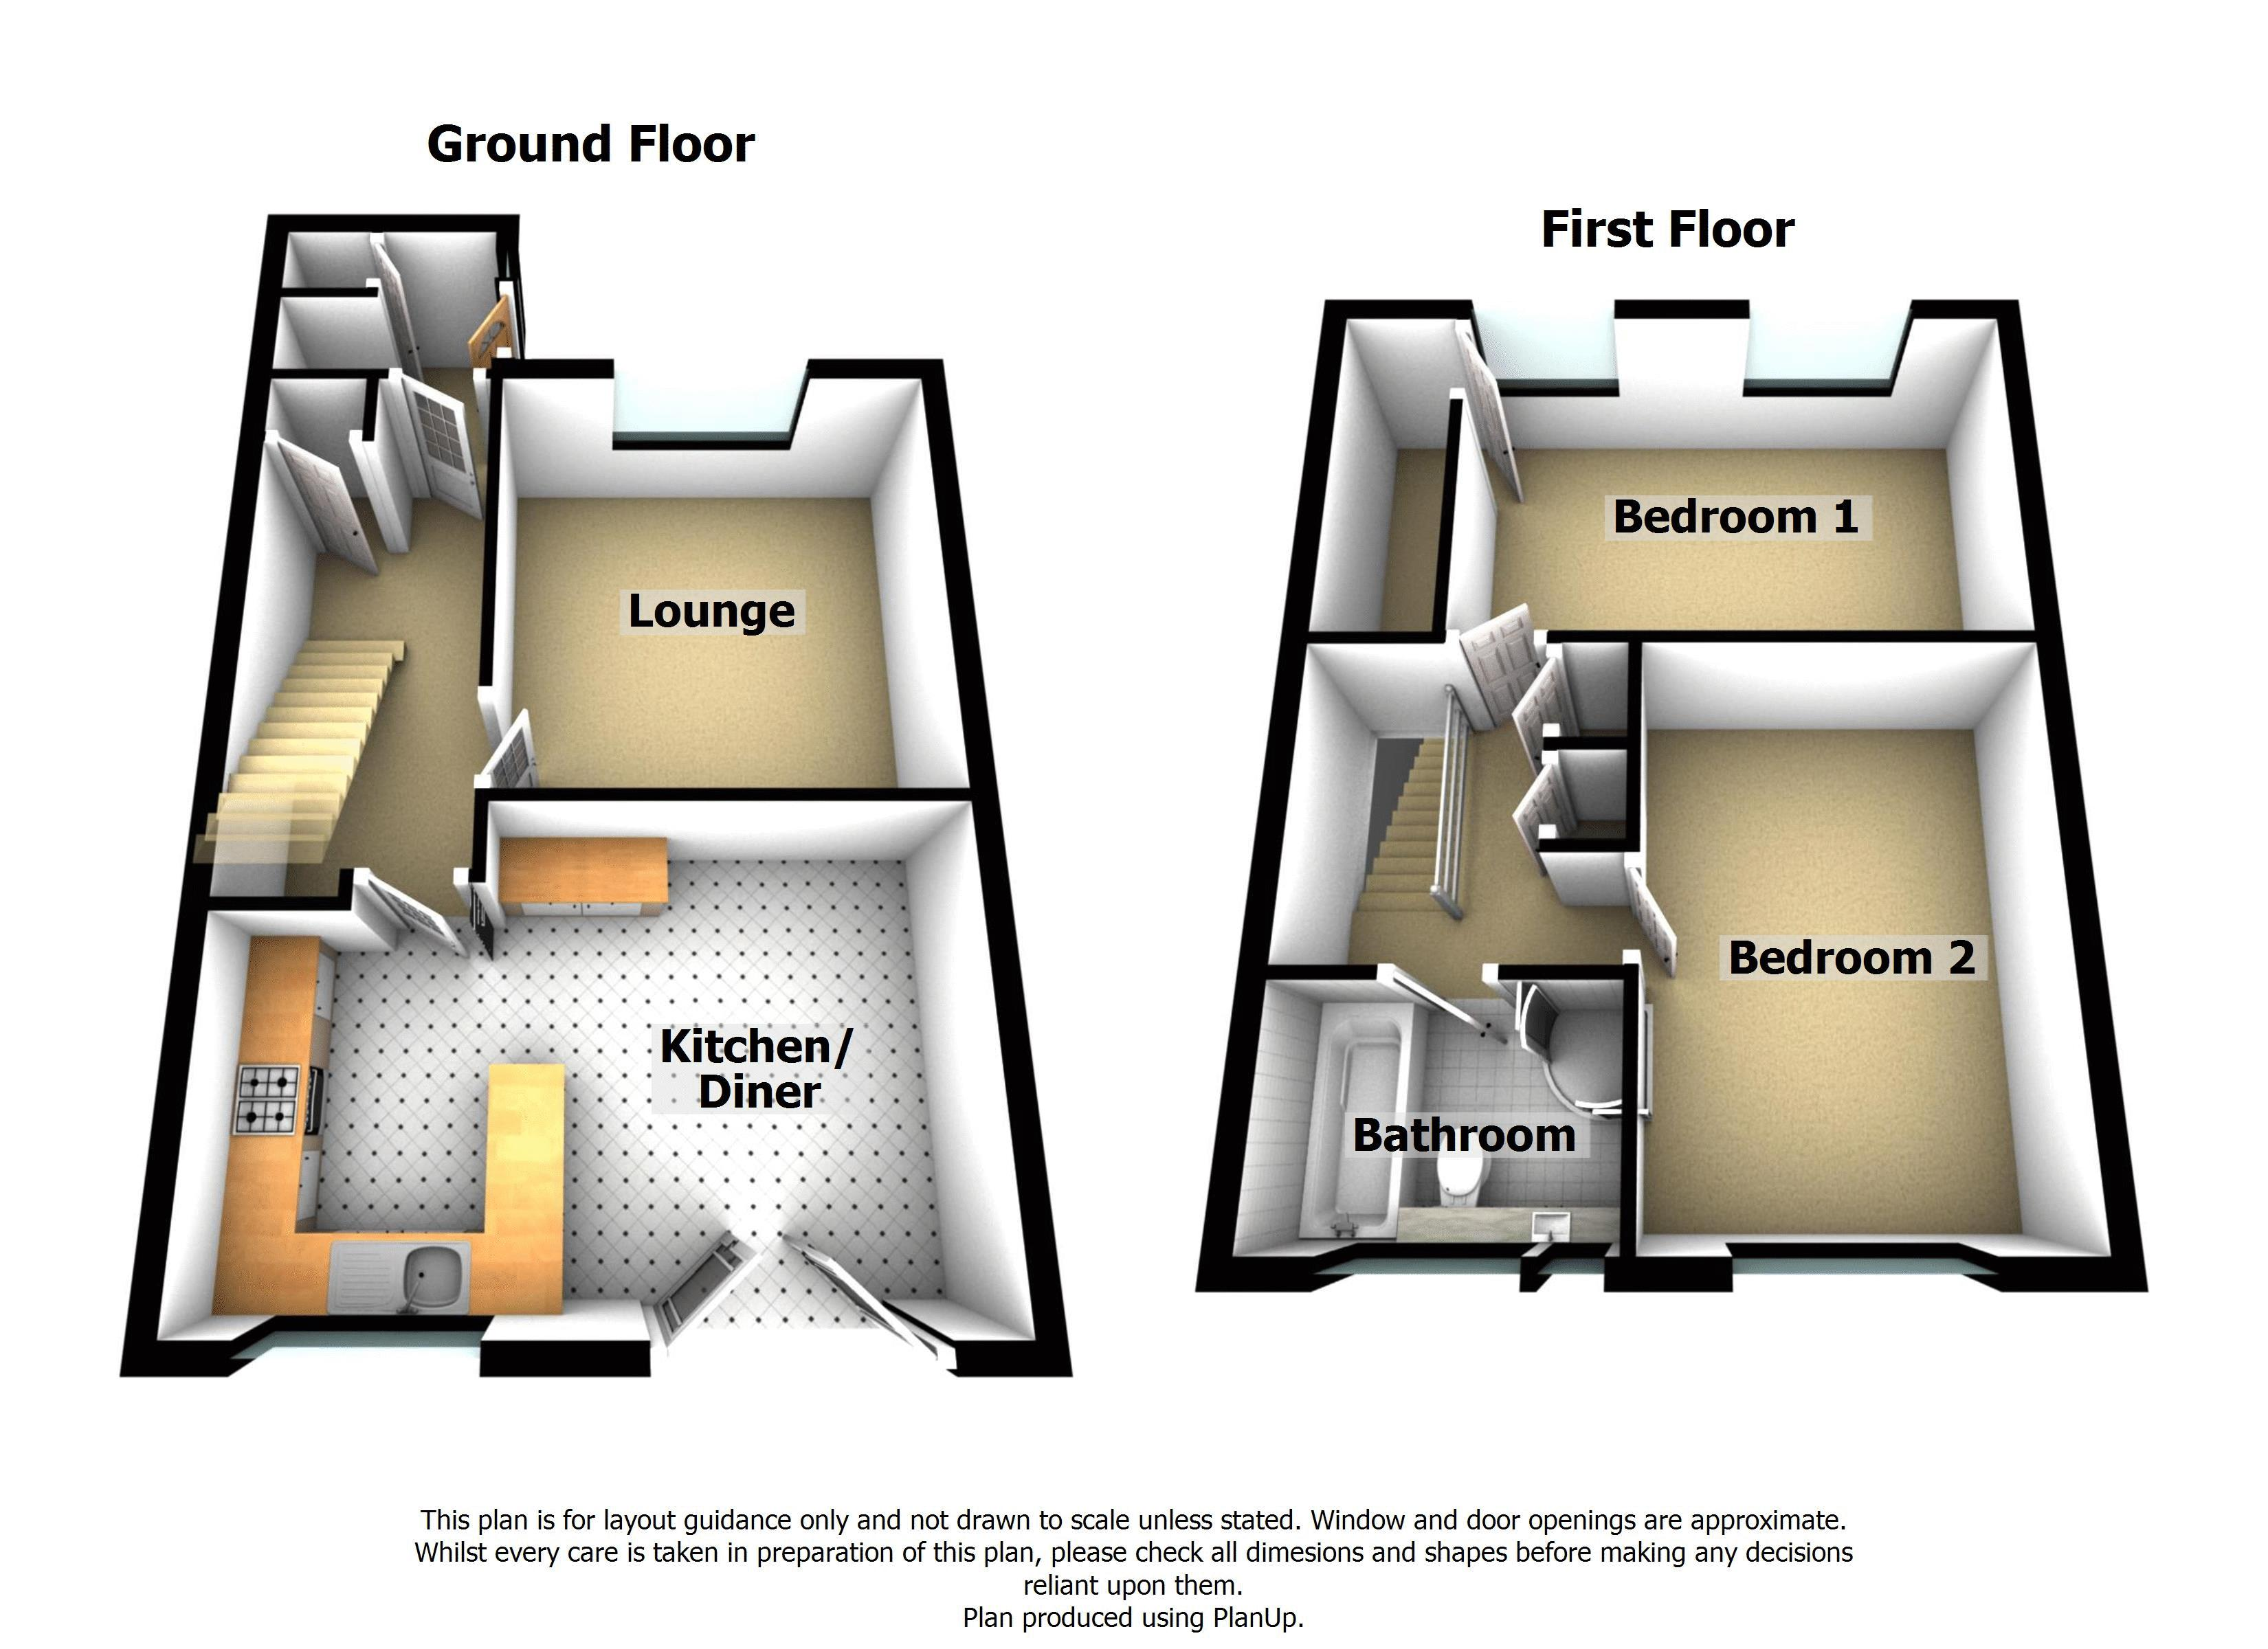 2 Bedrooms Terraced house for sale in Kitswell Gardens, Quinton, Birmingham B32